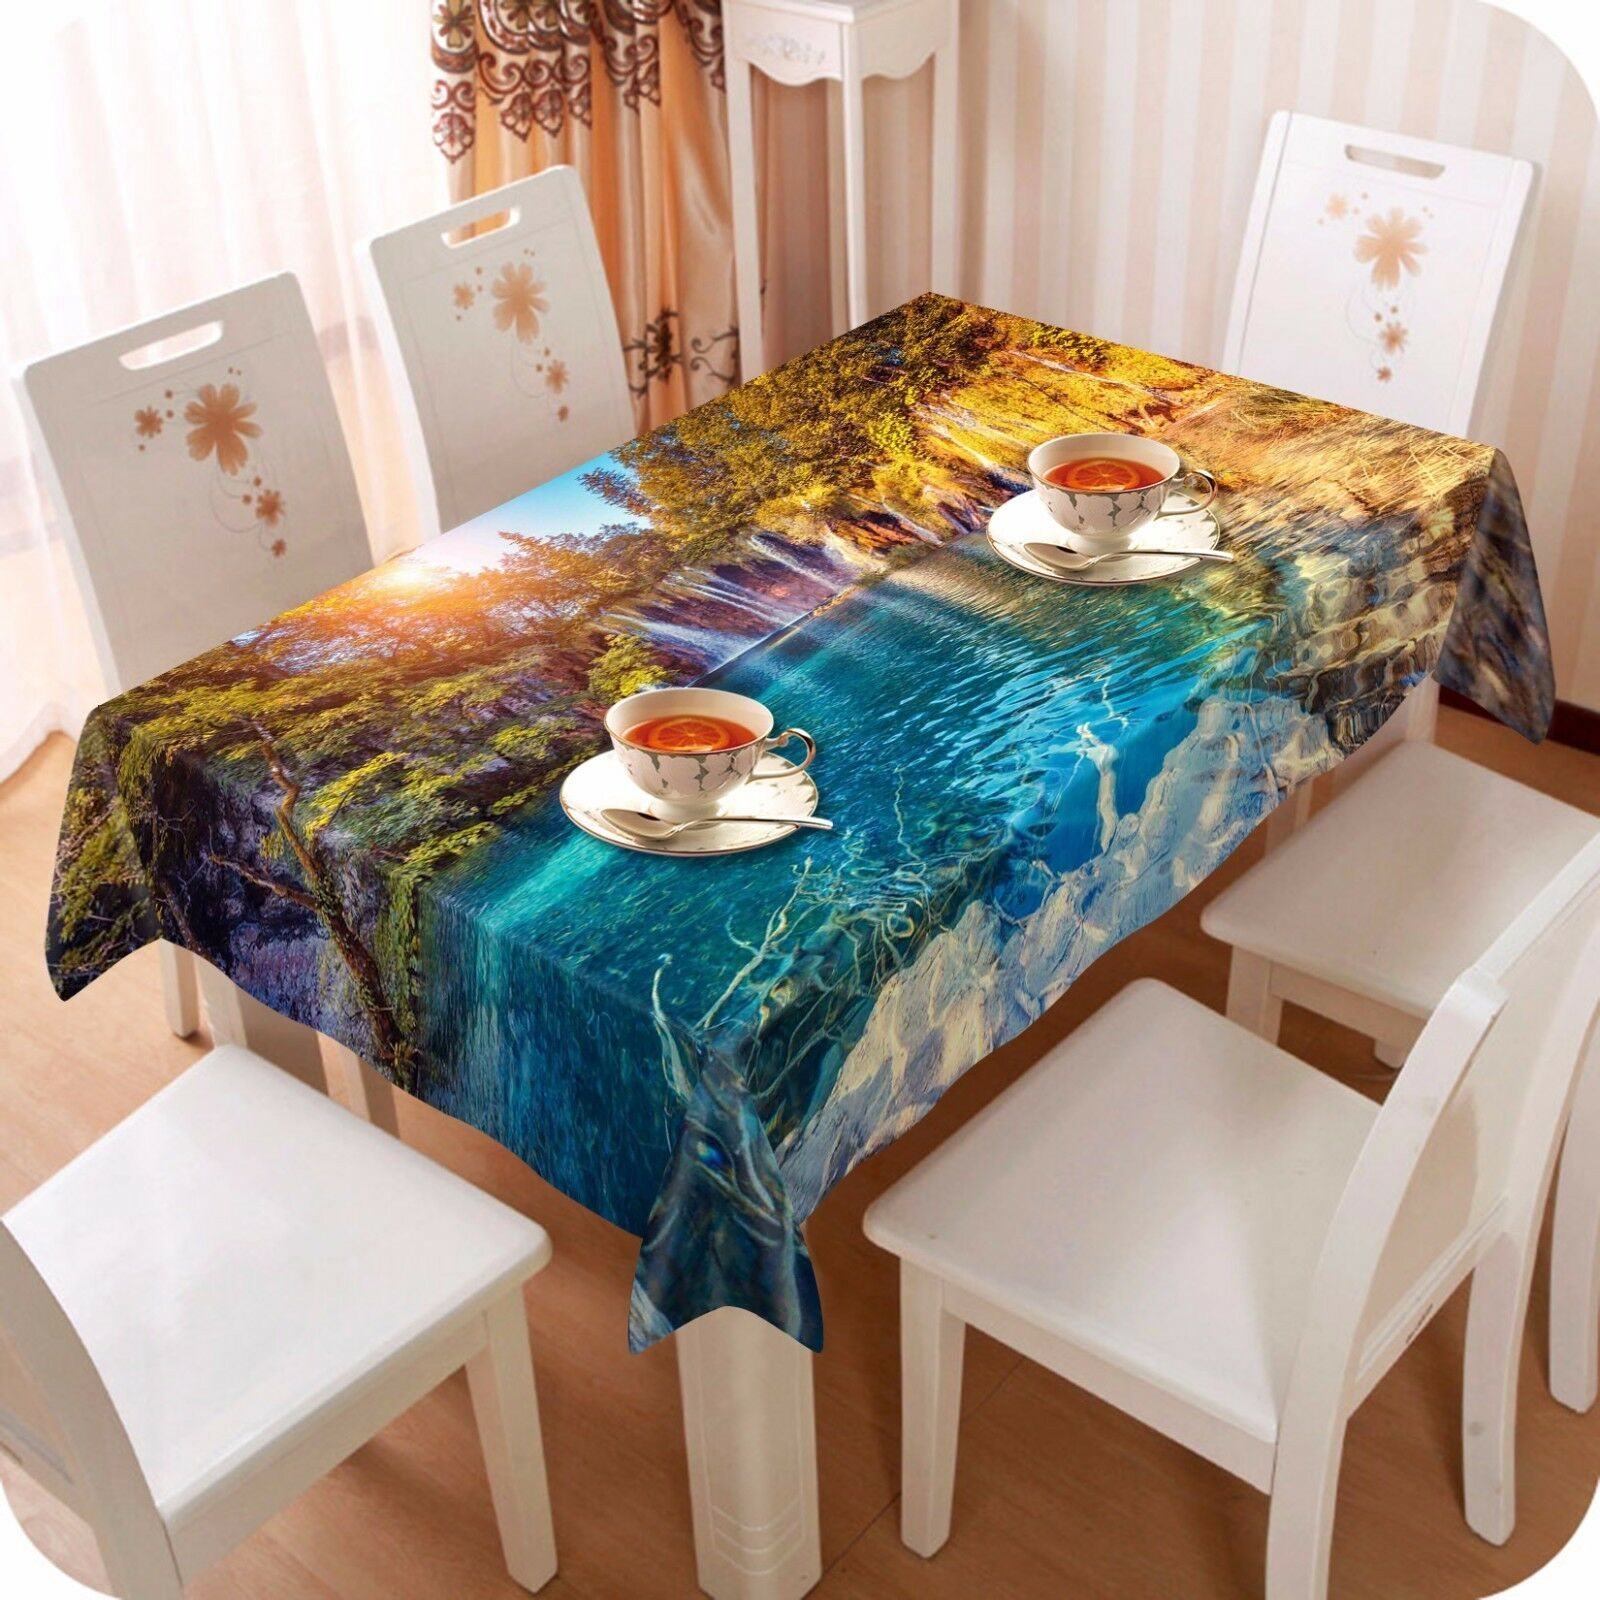 3D River 55 Nappe Table Cover Cloth fête d'anniversaire AJ papier peint Royaume-Uni Citron